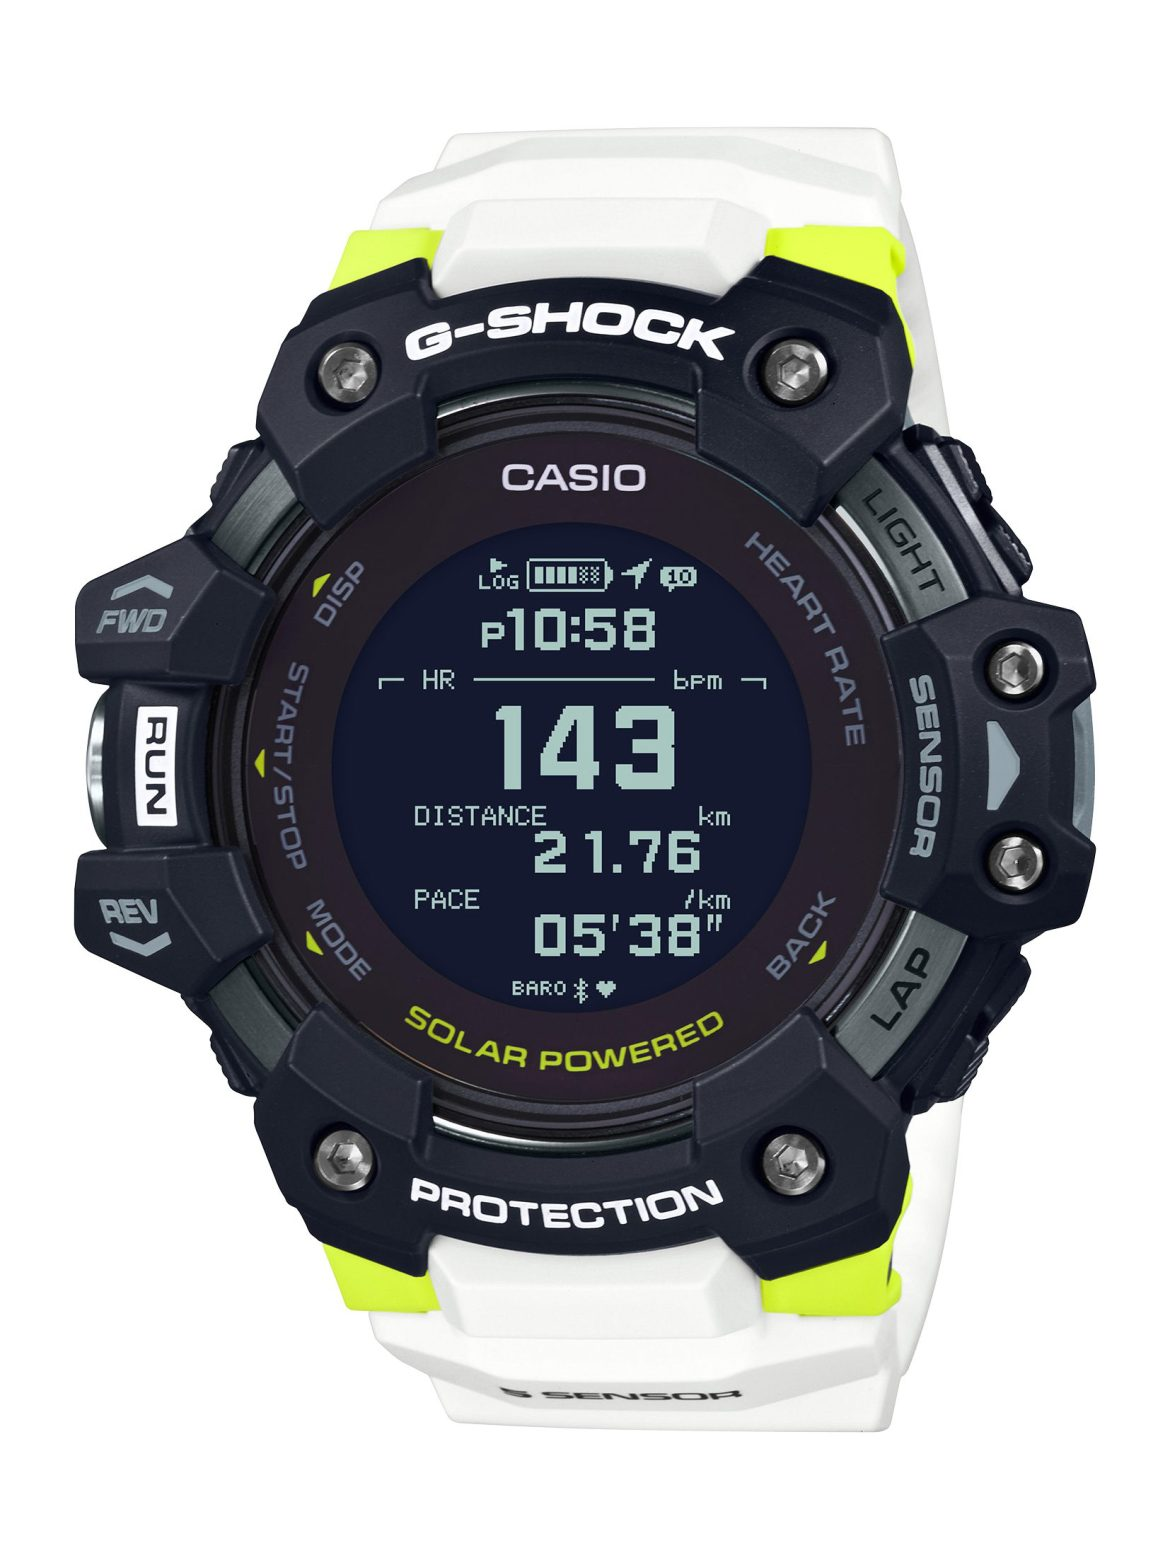 G-Shock adds a heartrate sensor for the very first time